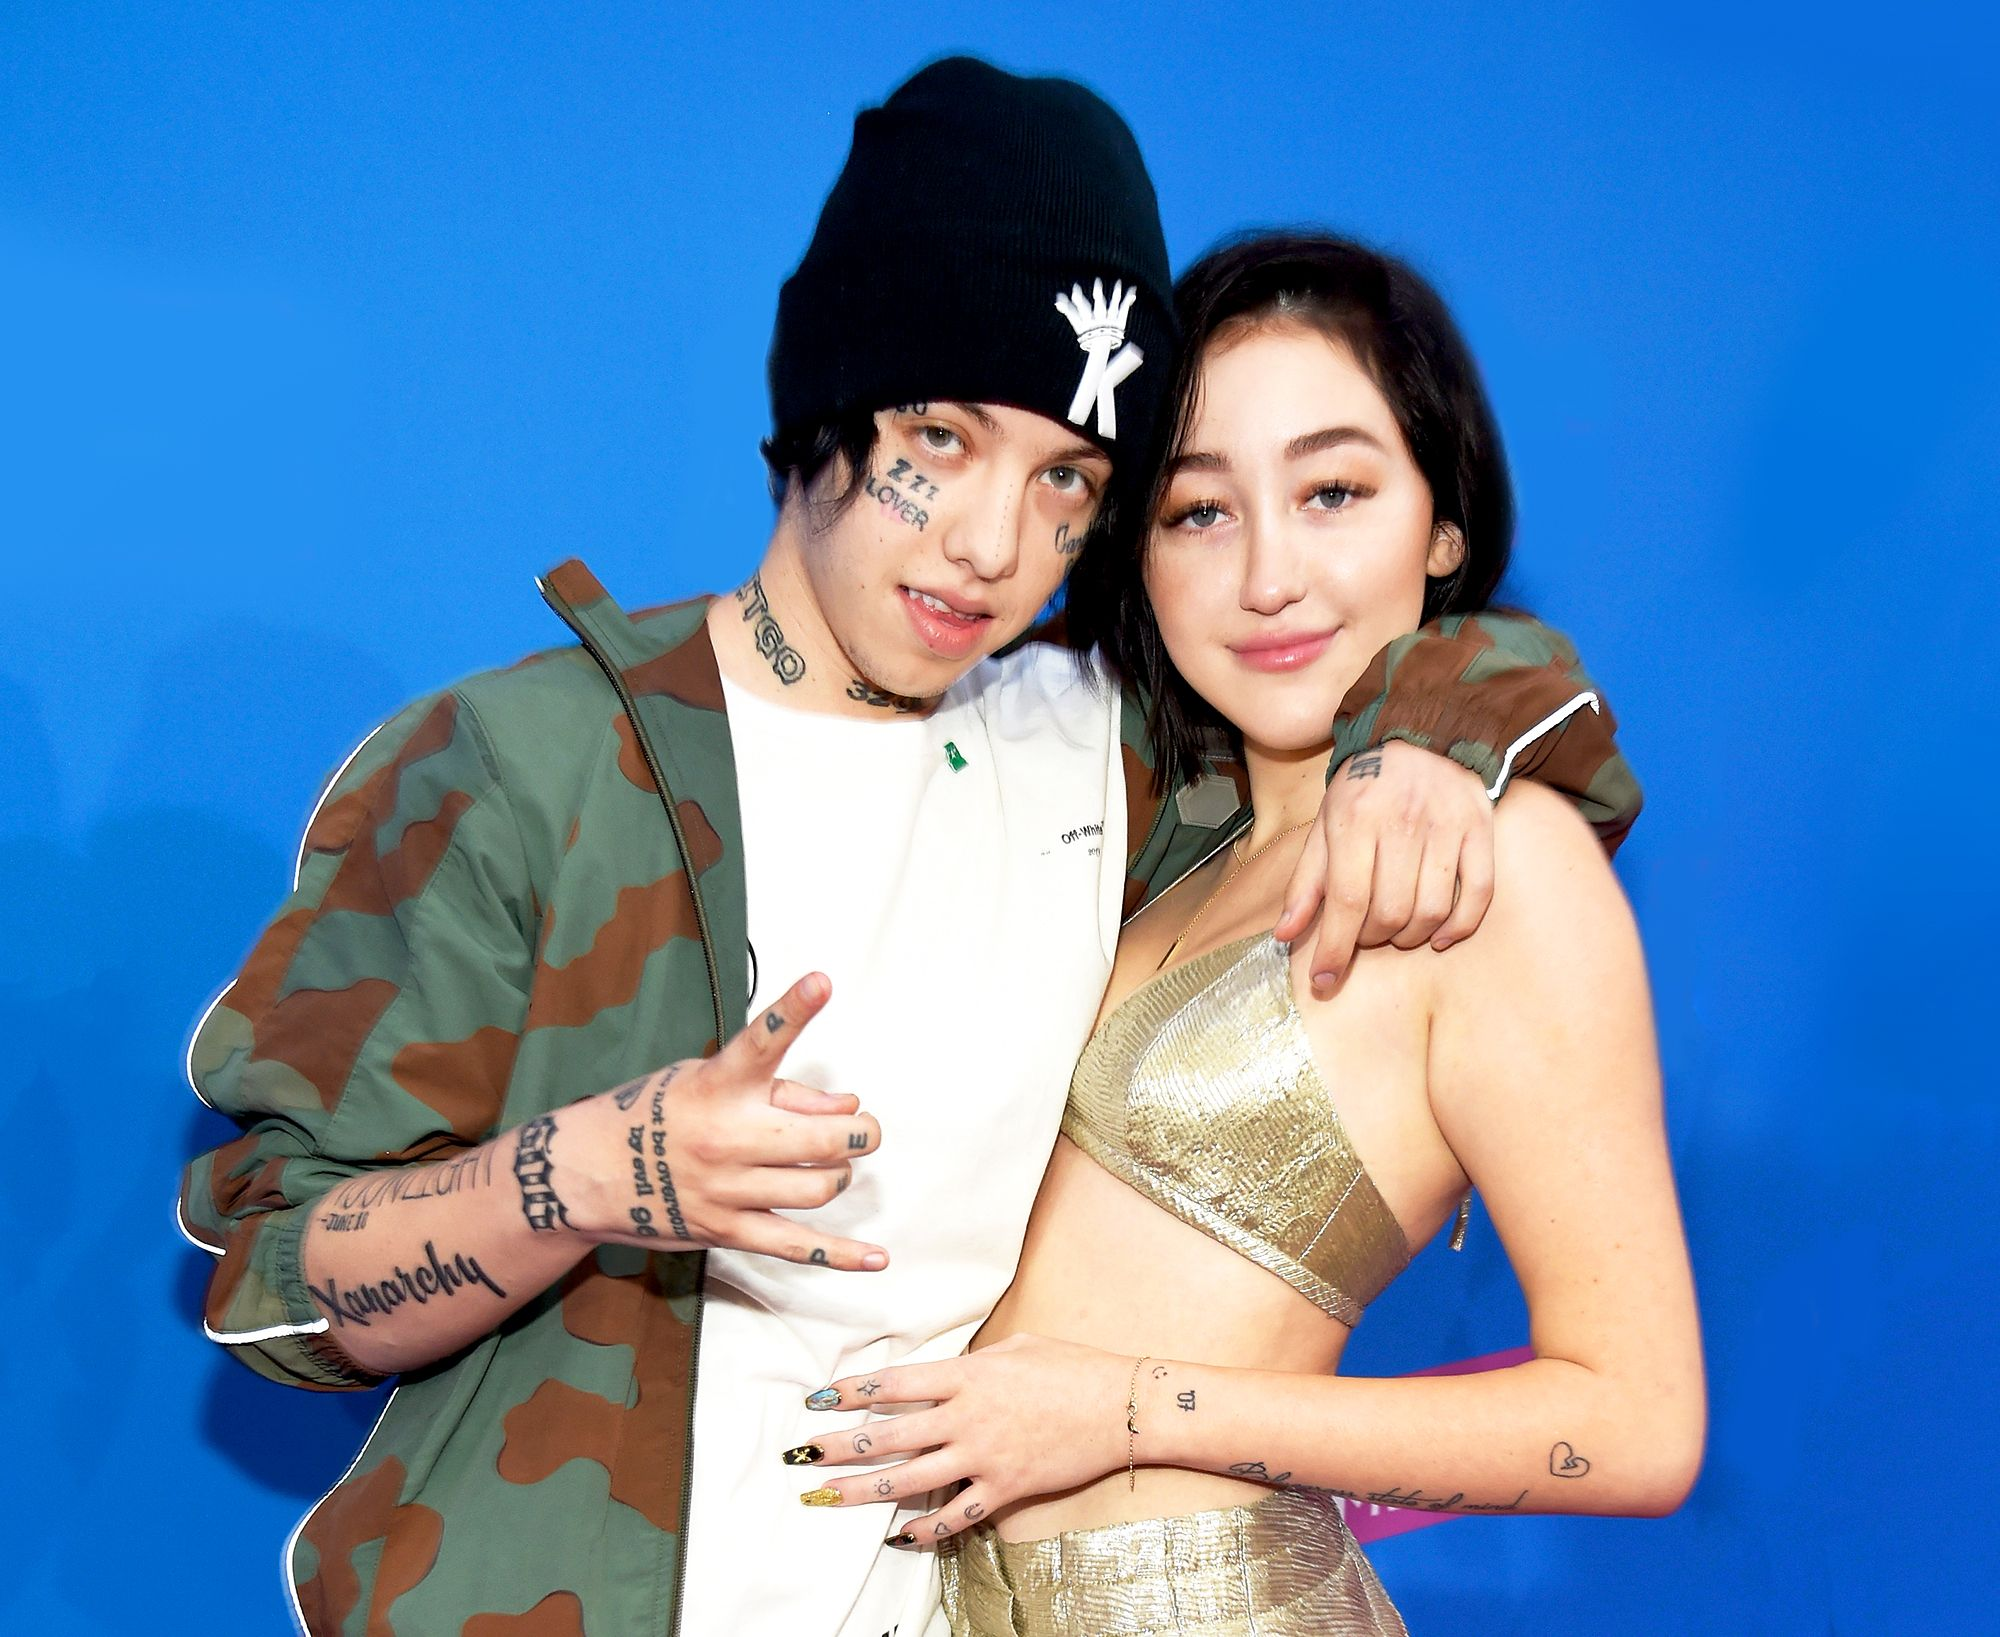 Lil Xan and Noah Cyrus Relationship Timeline, From First Date to Breakup